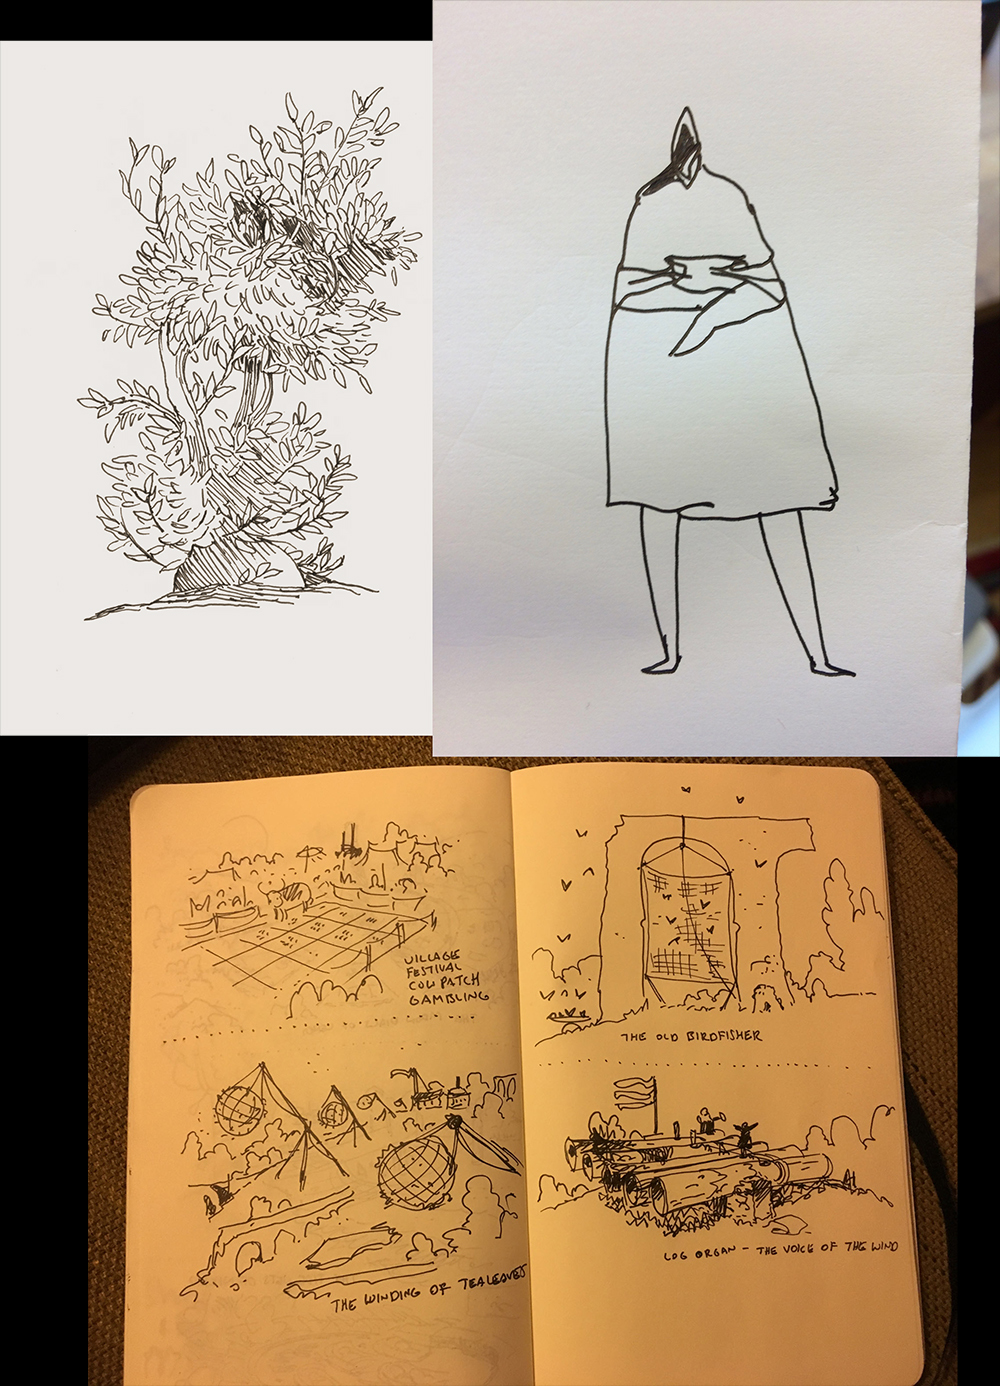 Book of Travels Story Guide + Walkthrough - Overview - Sketches from the Attic - 0053BCB